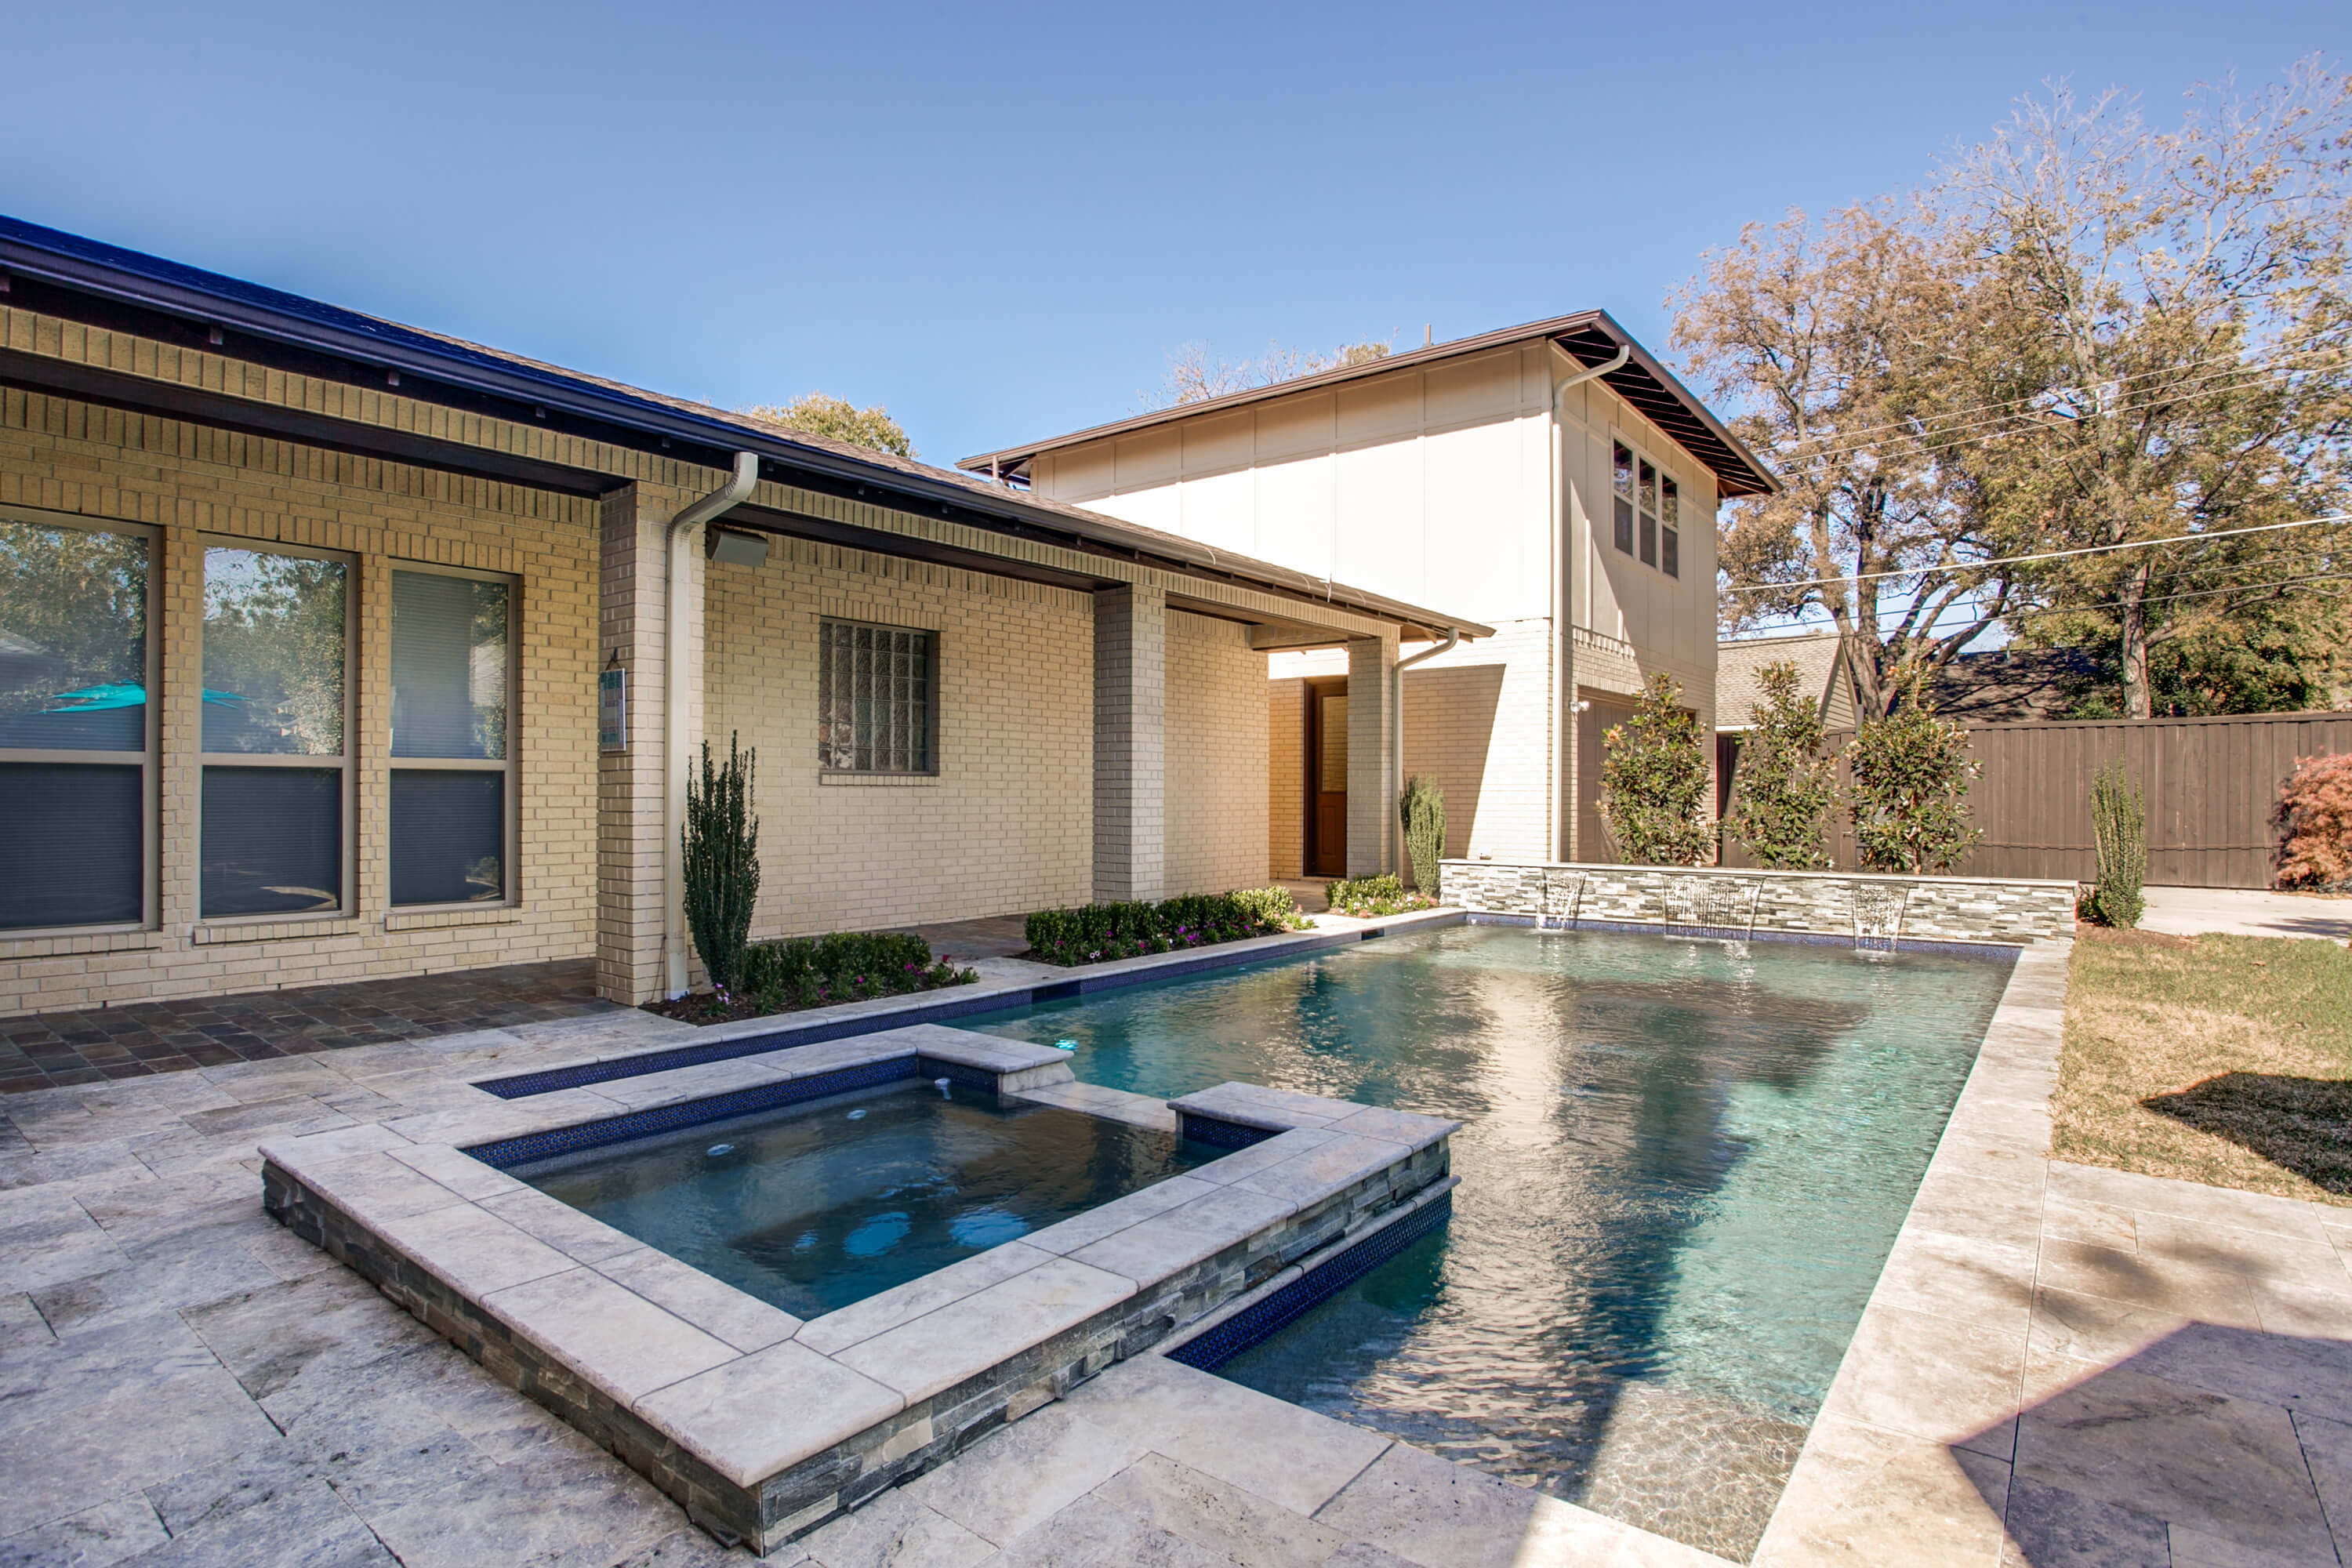 5 Pool Water Conservation Tips for Dallas Area Pool Owners